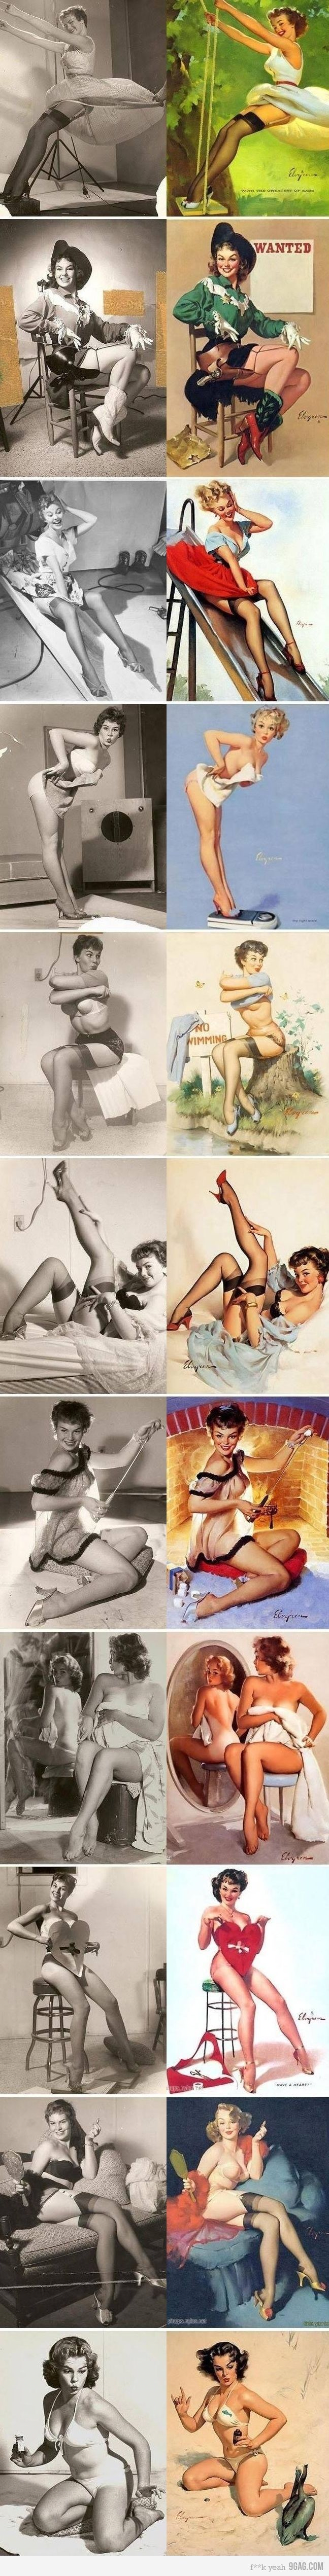 vintage pinup source